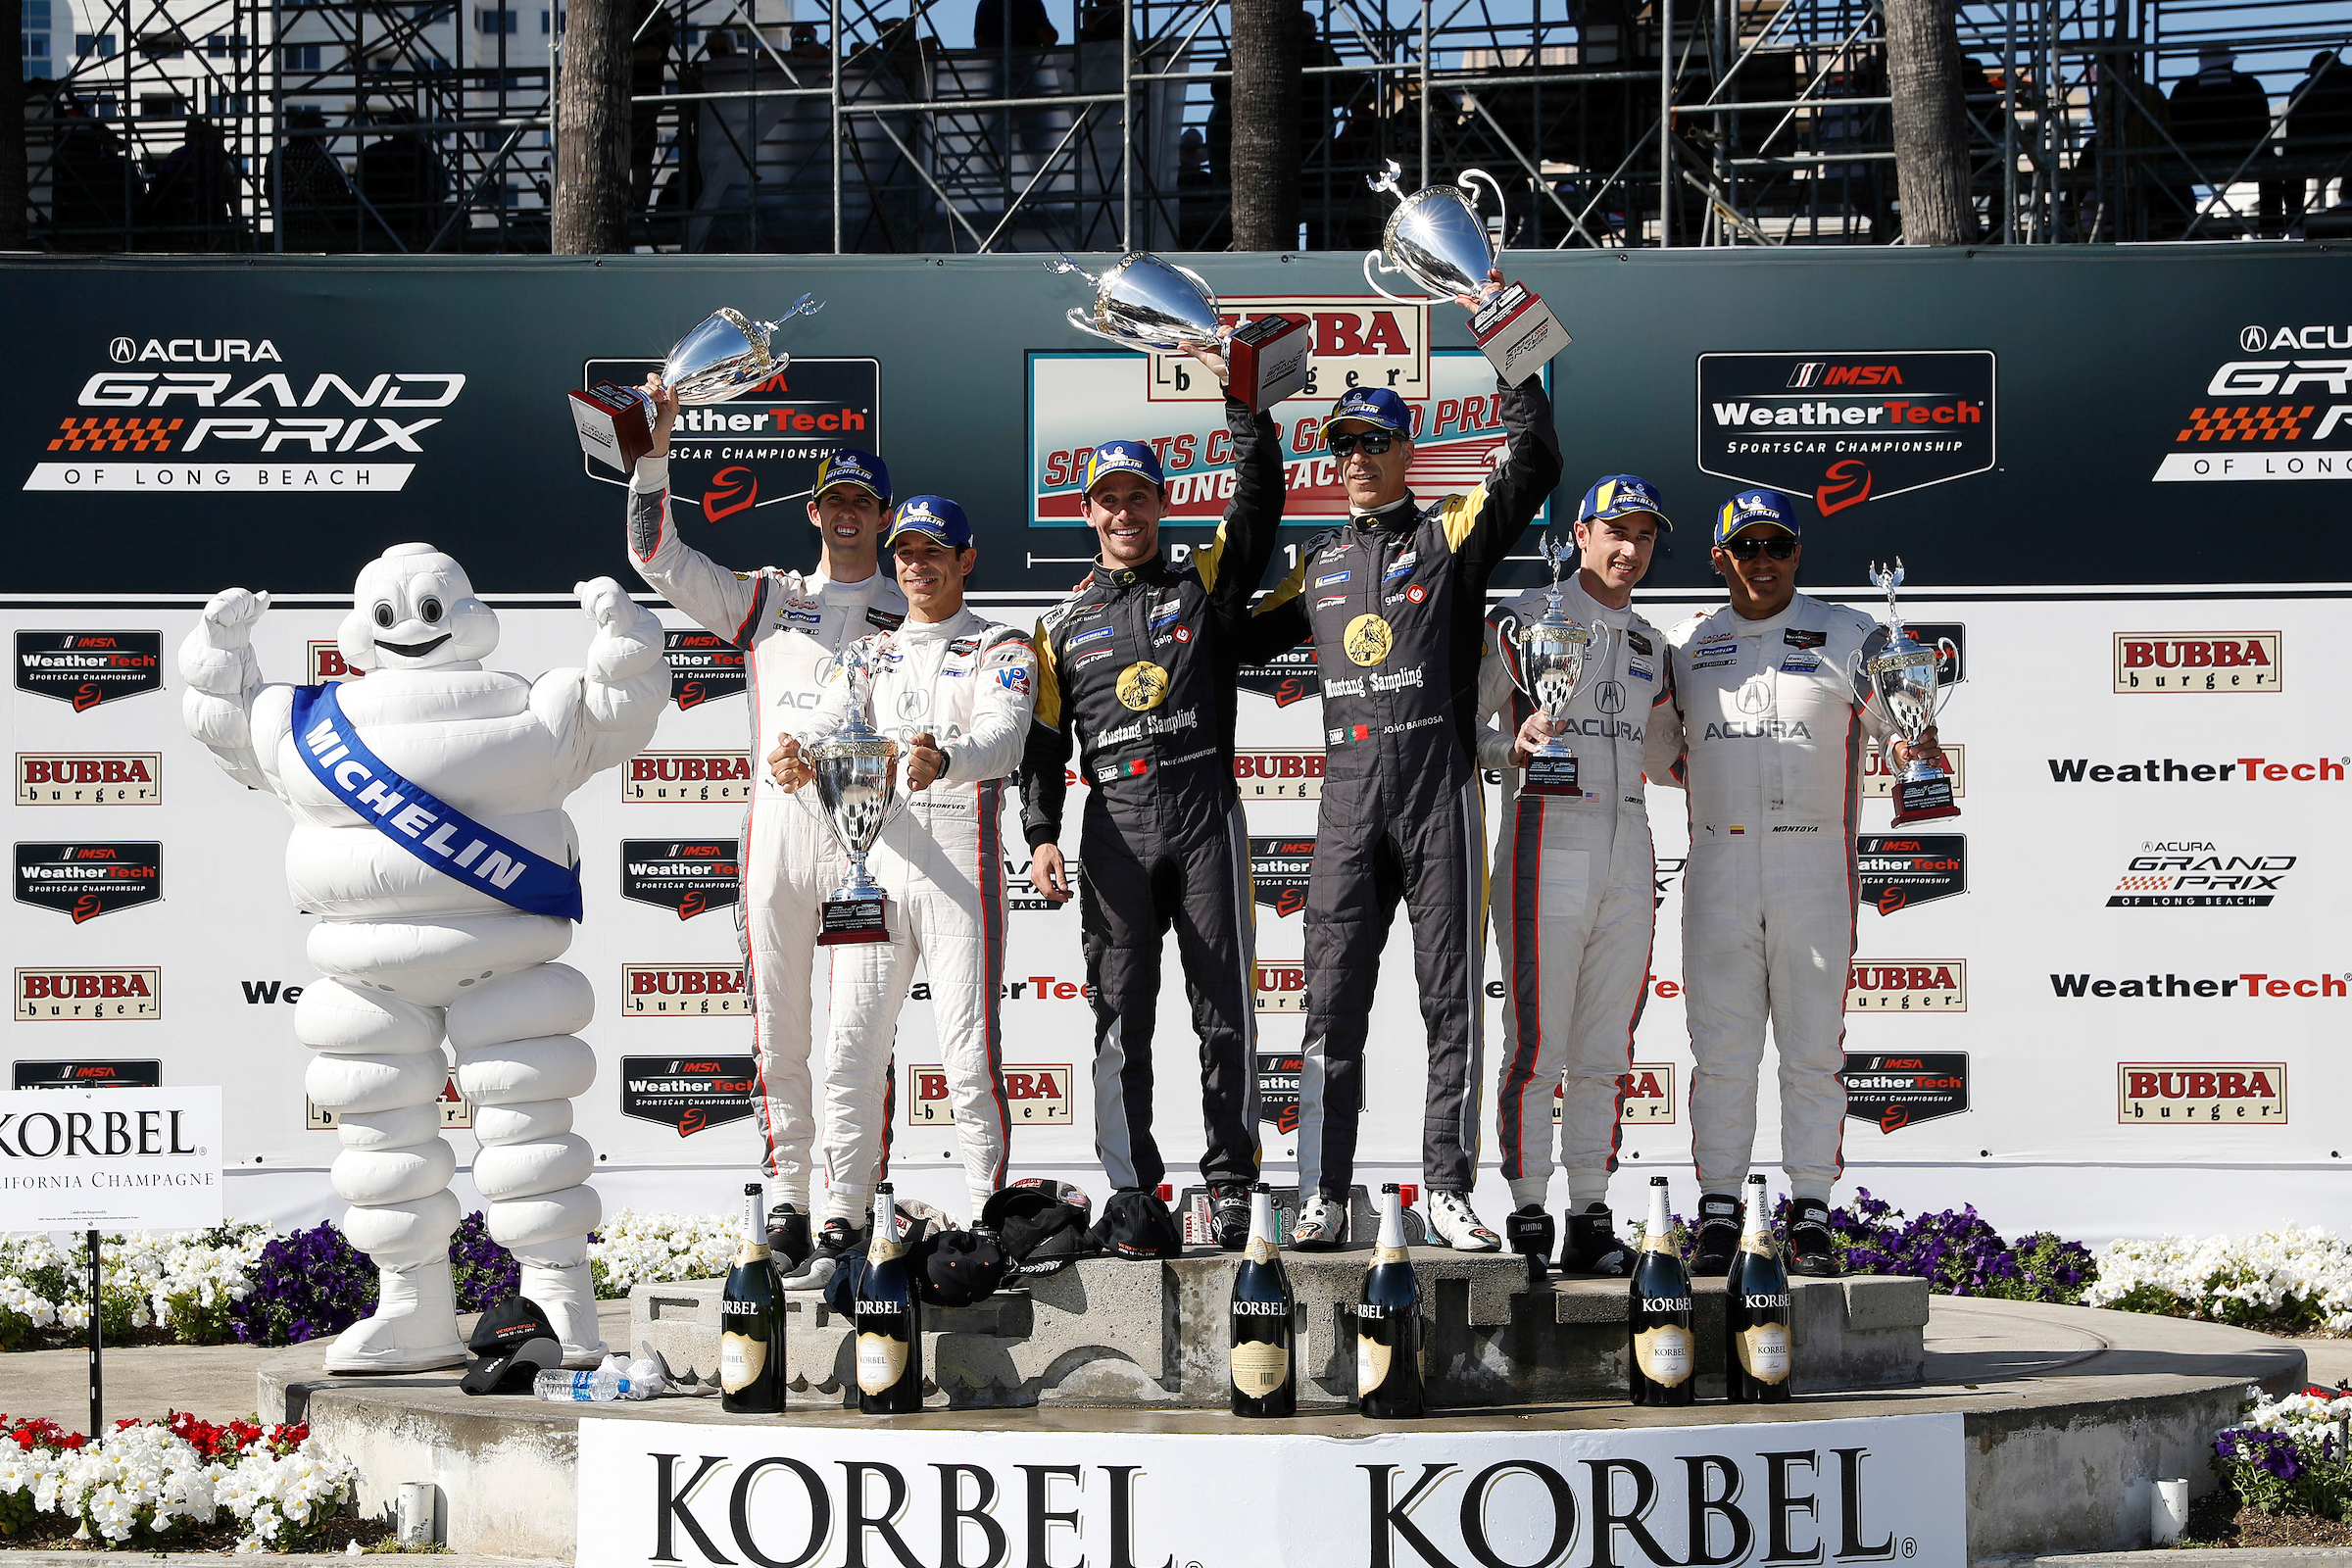 Video: IMSA at Long Beach Recap